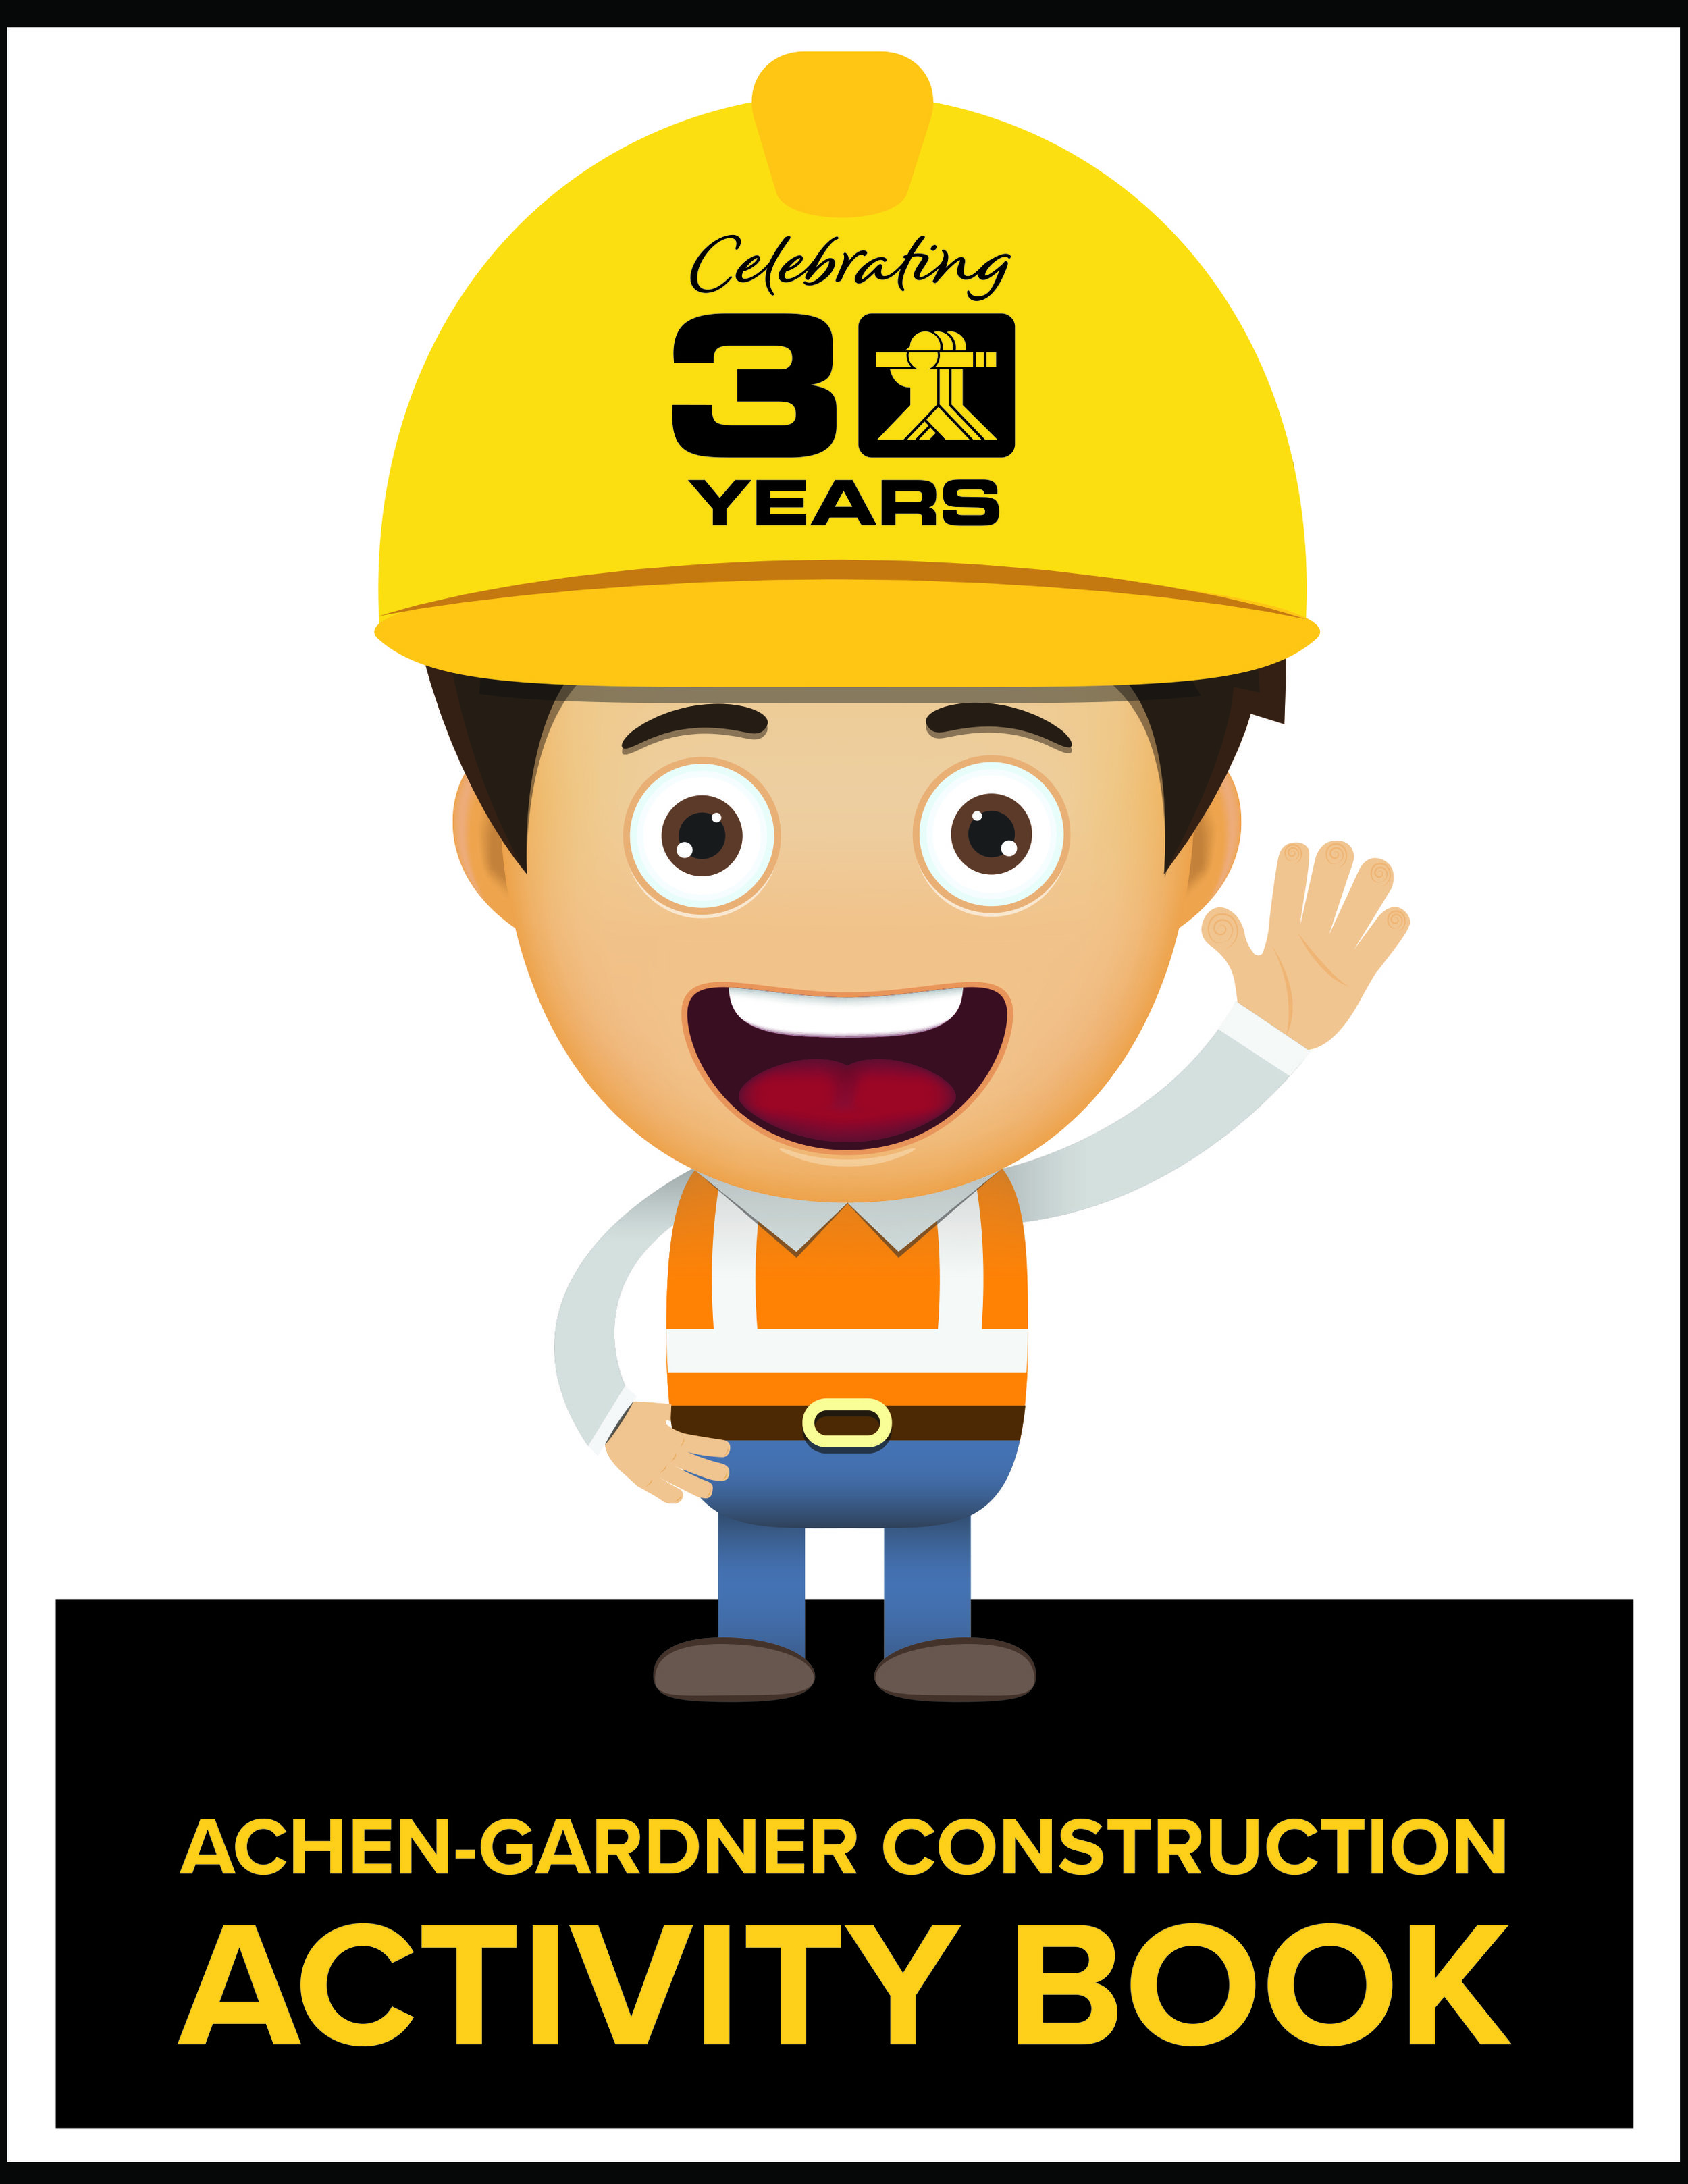 Achen-Gardner Construction Activity Book 2019-coveroutline.jpg